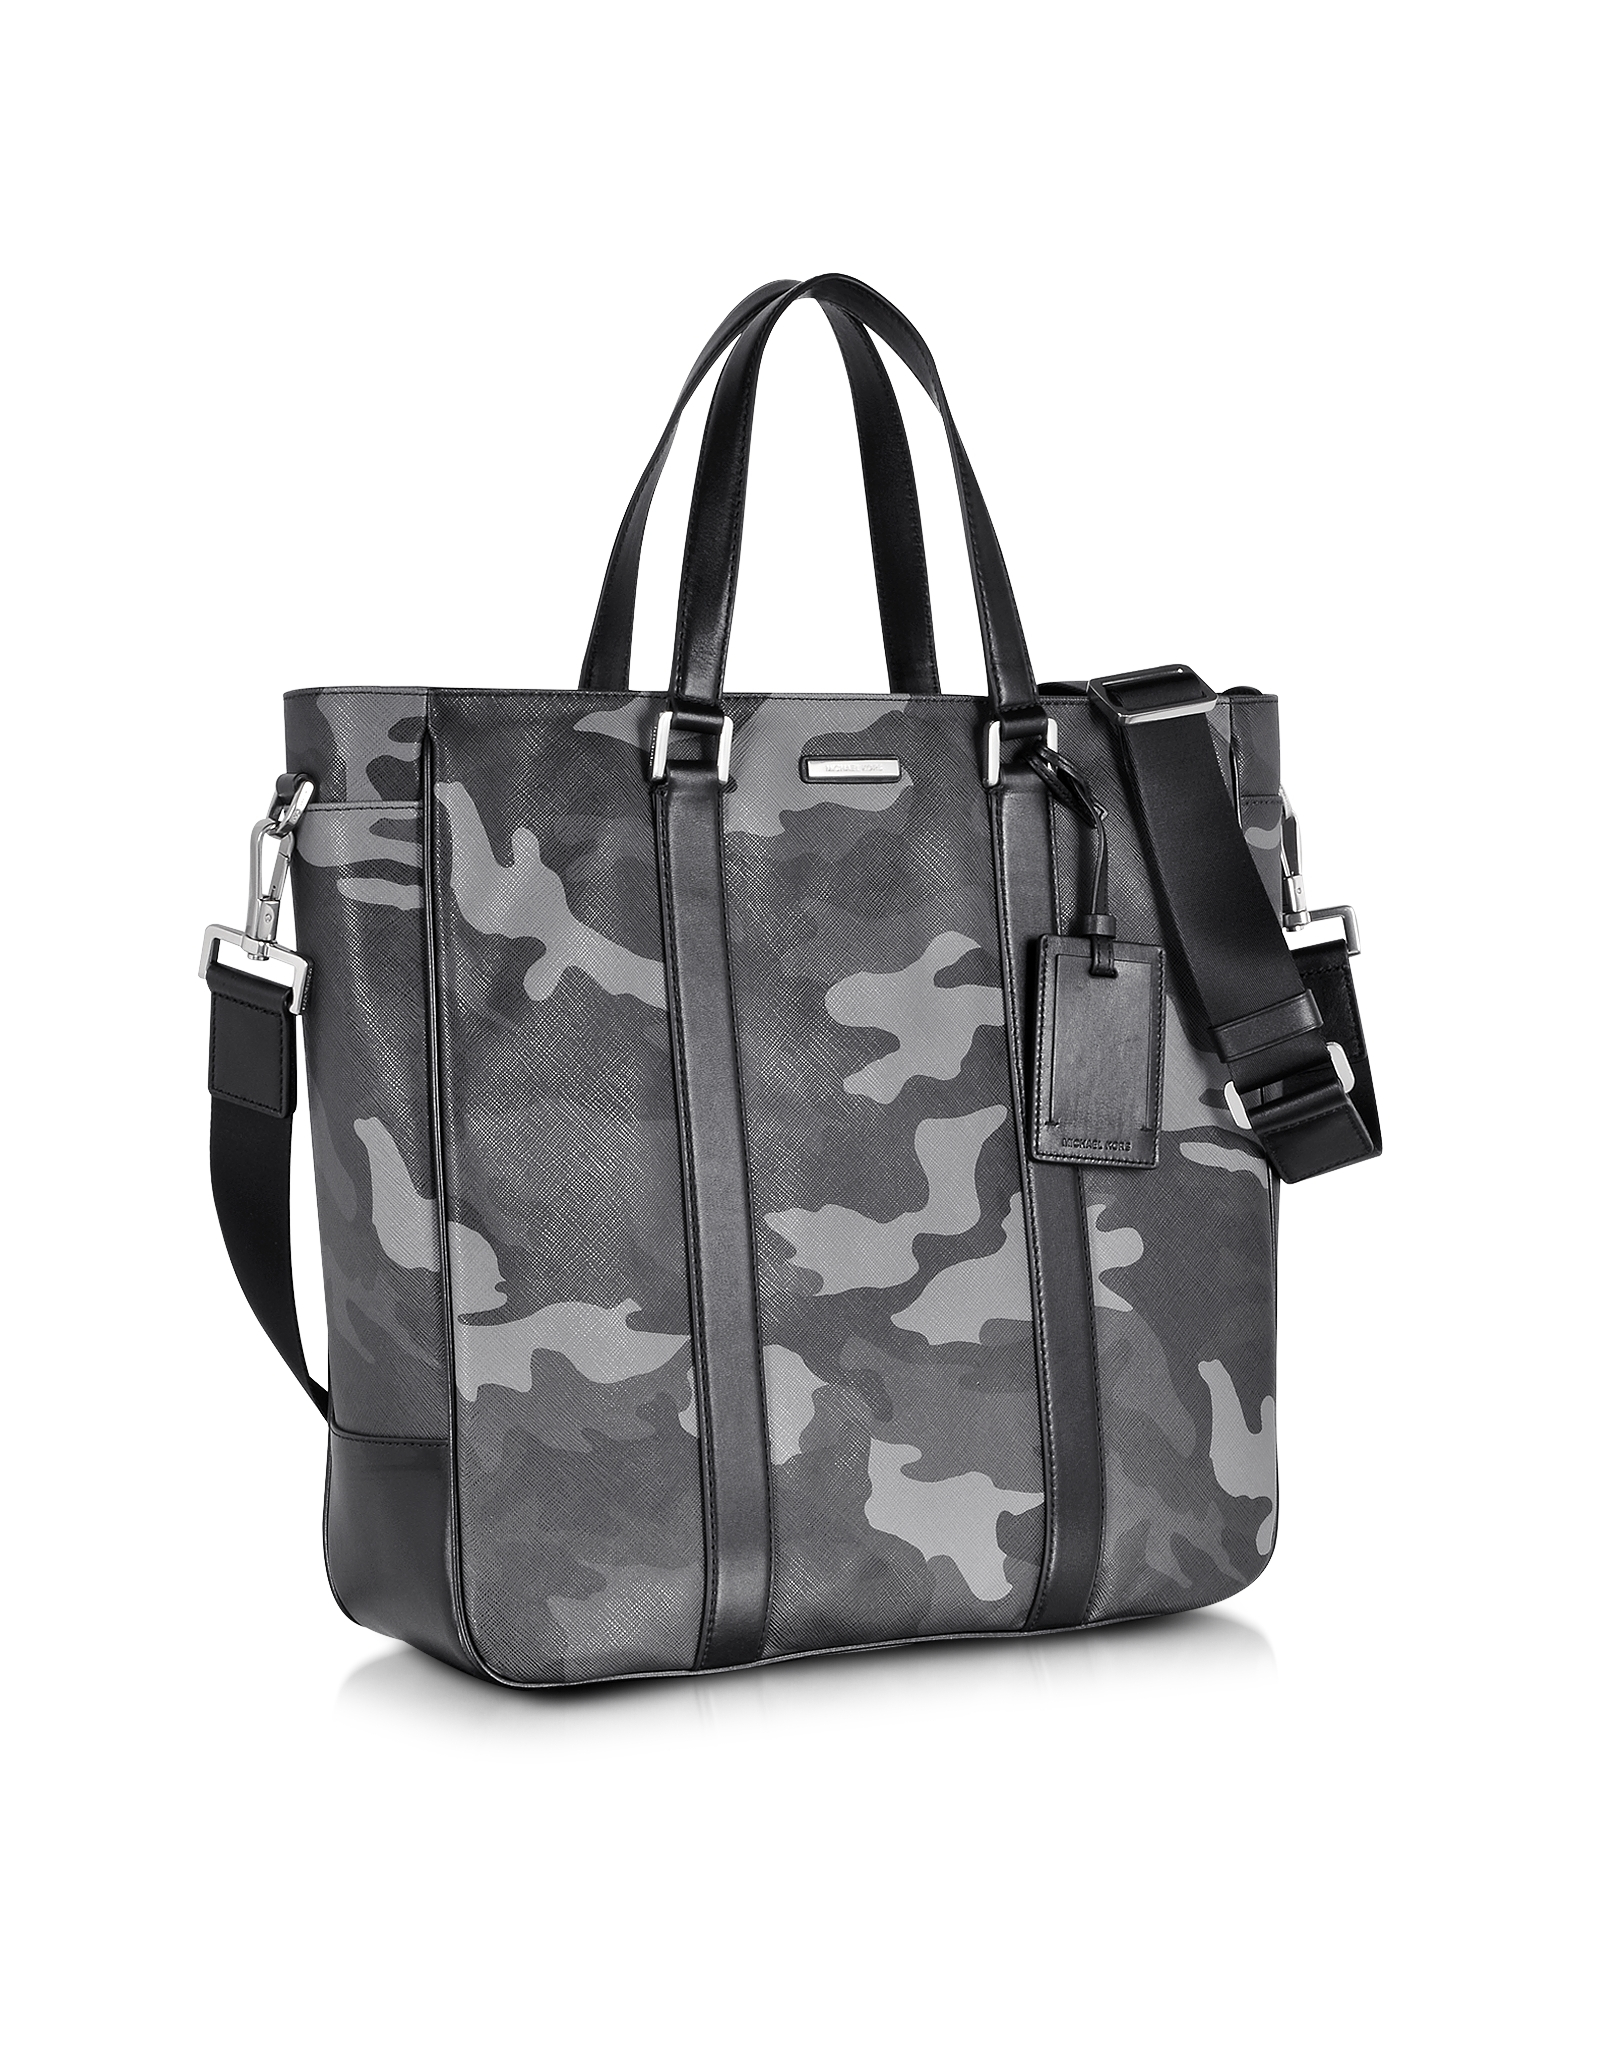 24dbe825cdc7 Lyst - Michael Kors Large Jet Set Men S Camo Eco Leather Tote in ...